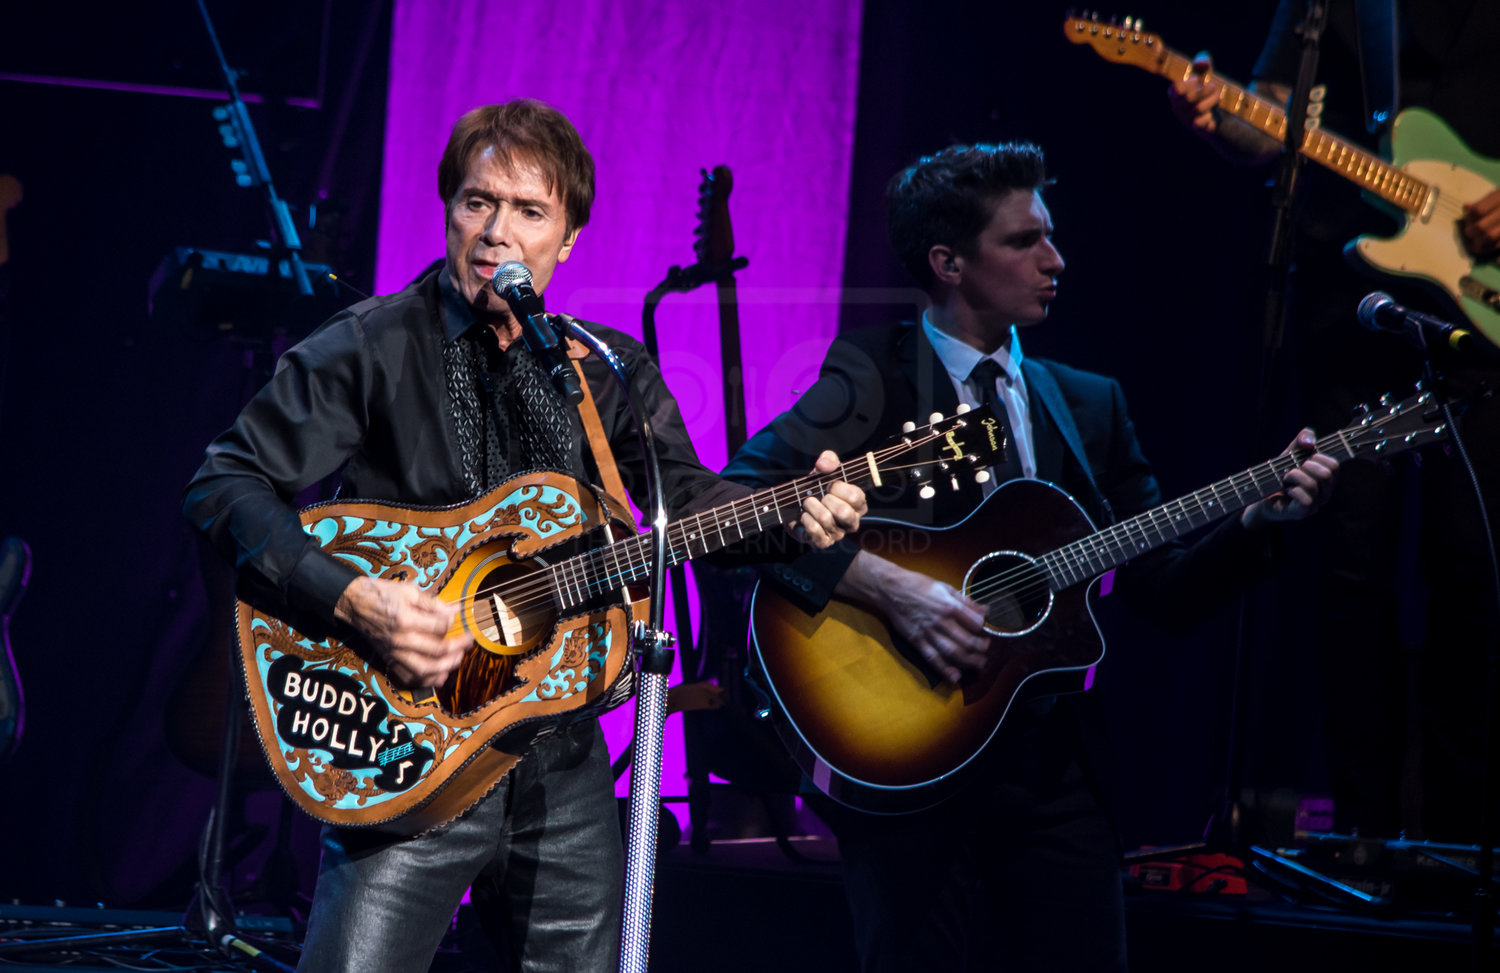 SIR CLIFF RICHARD PERFORMING AT GLASGOW'S ROYAL CONCERT HALL - AS PART OF HIS 60TH ANNIVERSARY TOUR - 05.10.2018  PICTURE BY: STEPHEN WILSON PHOTOGRAPHY